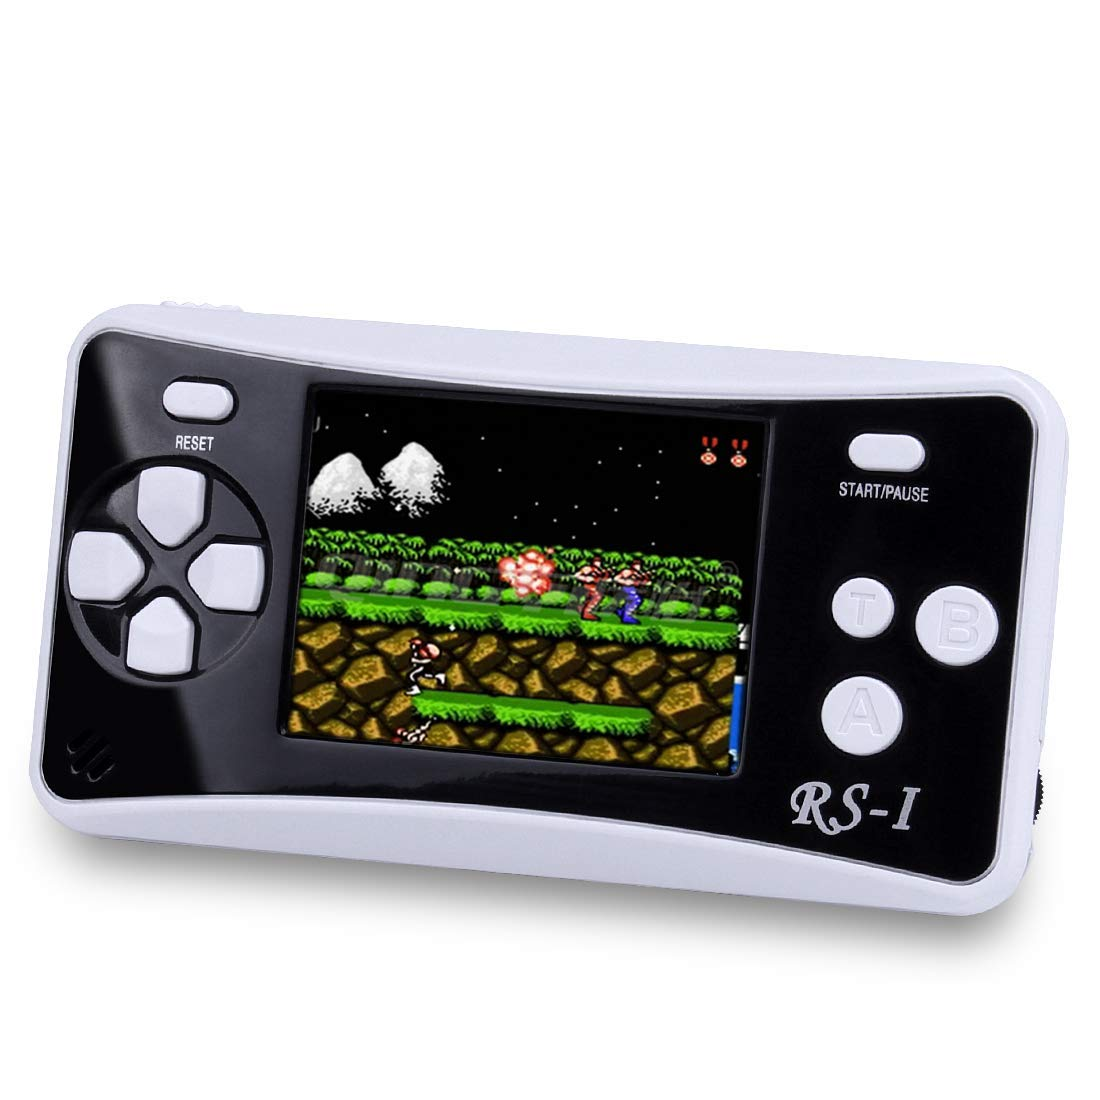 SKYRC Handheld Game Console for Kids,Classic Retro Game Player with 2.5'' LCD 8-Bit Portable Video Games Compatible with PAL AAD NTSC TV ,152 in 1 Classic Games -- (Black) by SKYRC (Image #1)